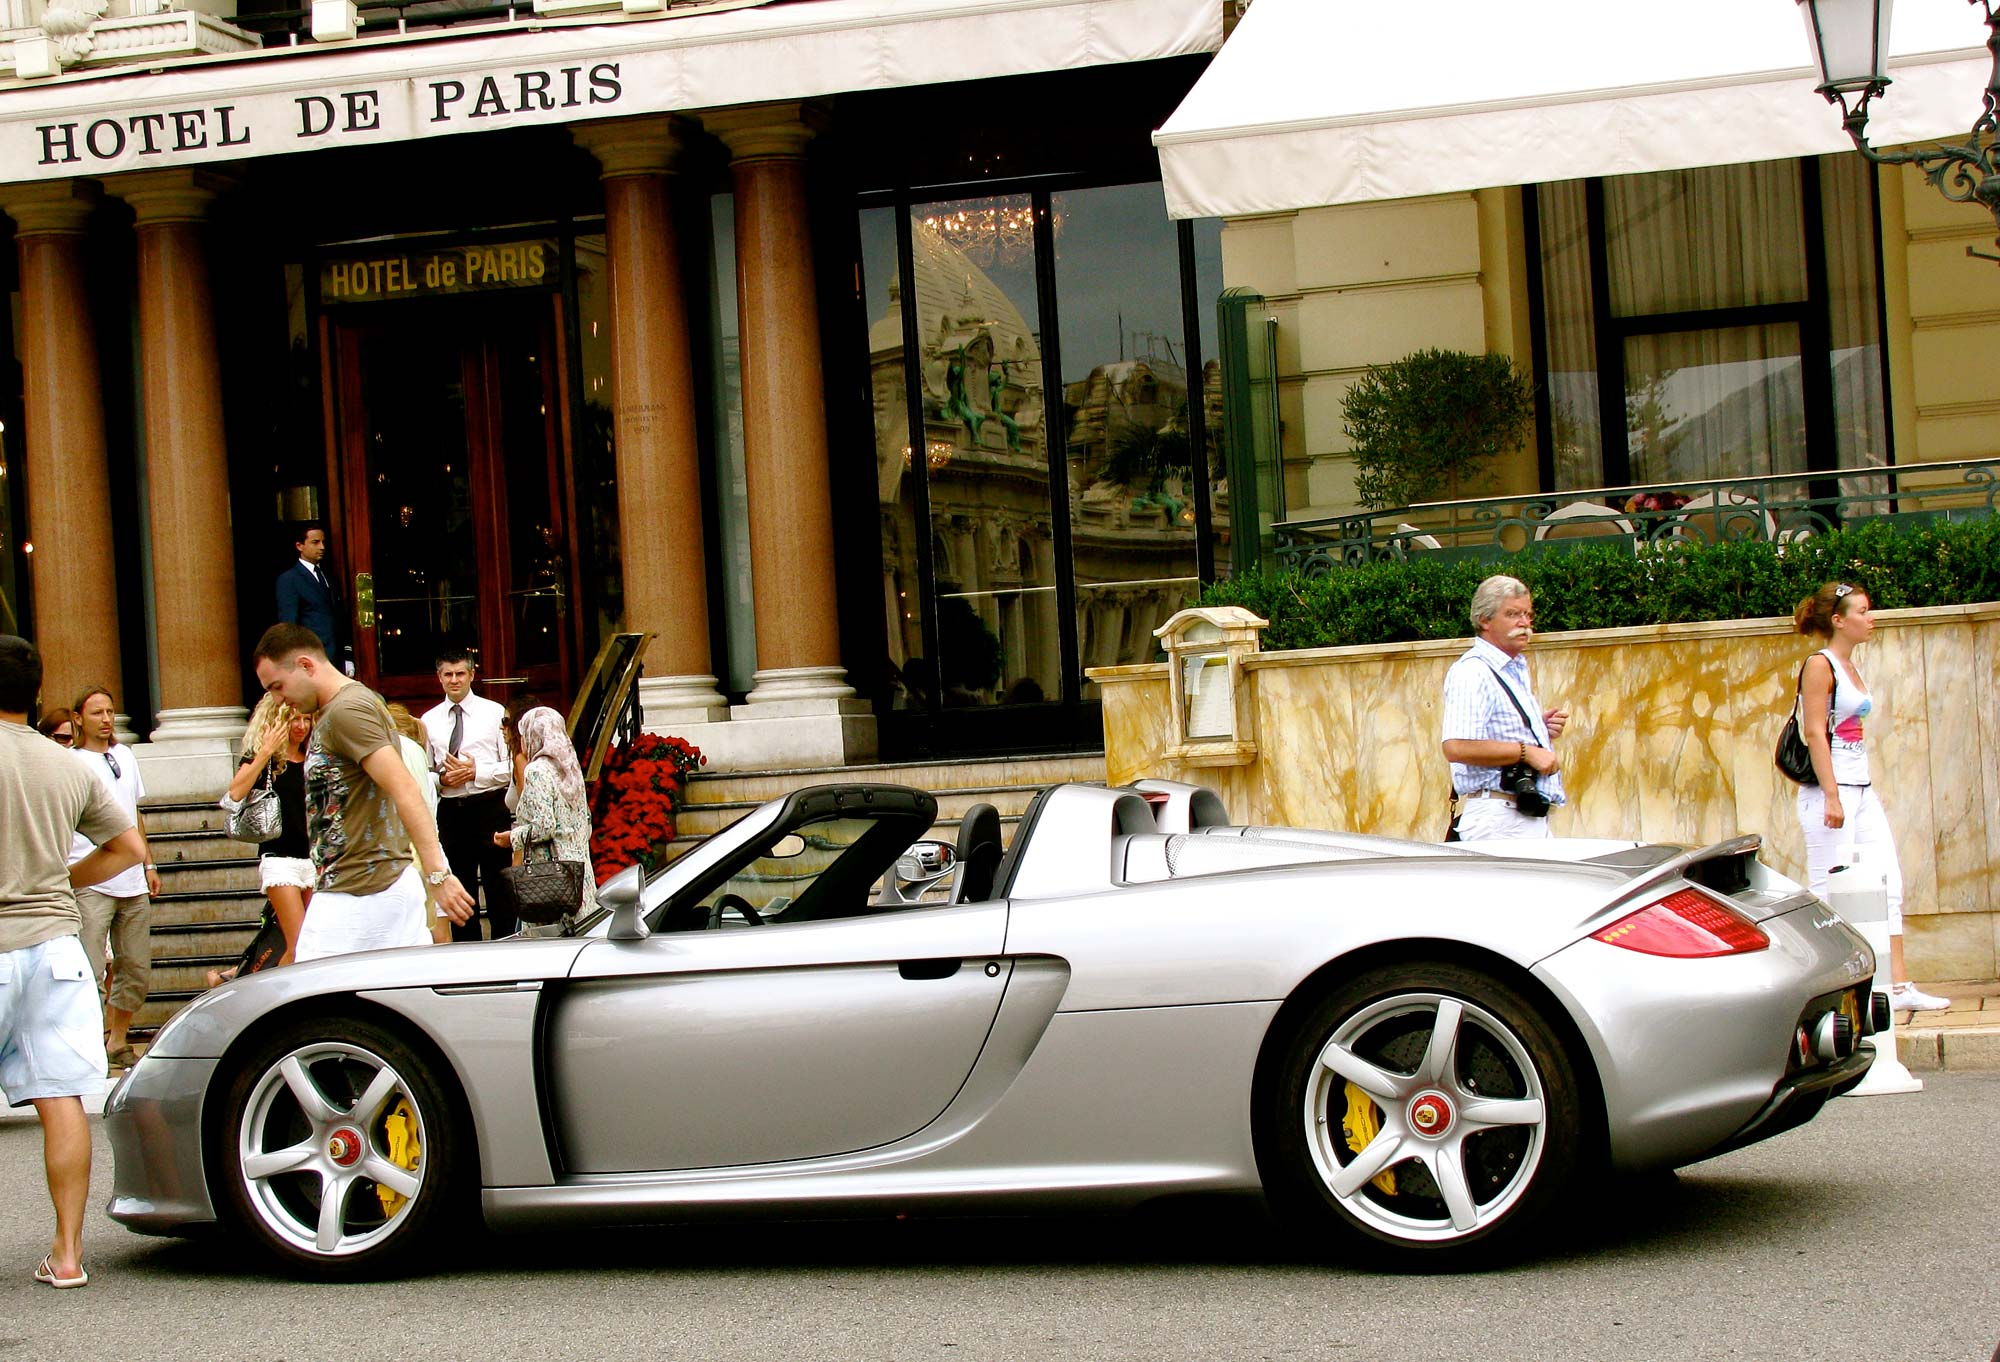 A Porsche Carrera GT outside the Hotel de Paris in Monte Carlo.